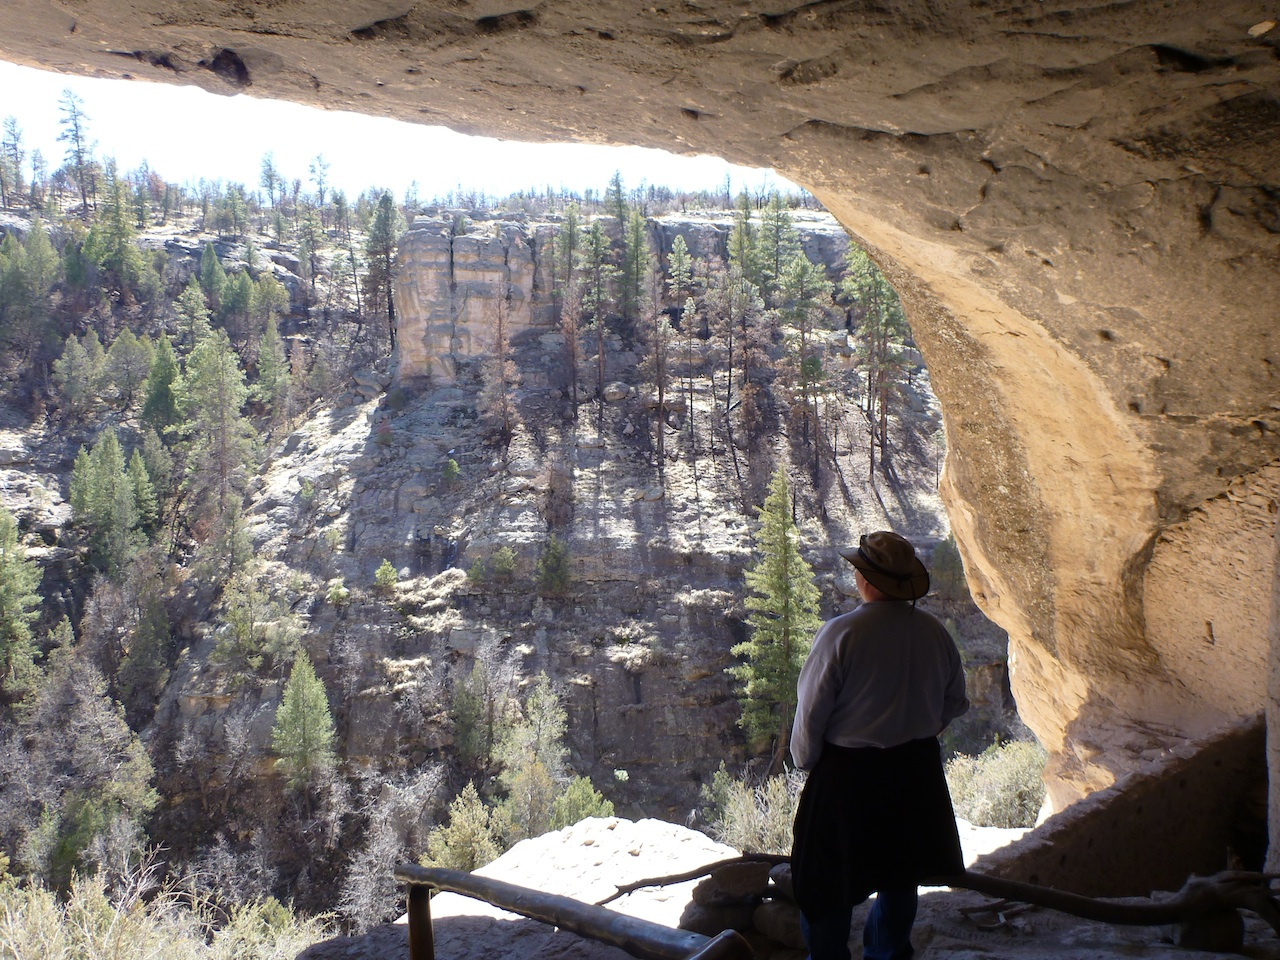 David Enjoying The View From Inside The Cliff Dwellings.